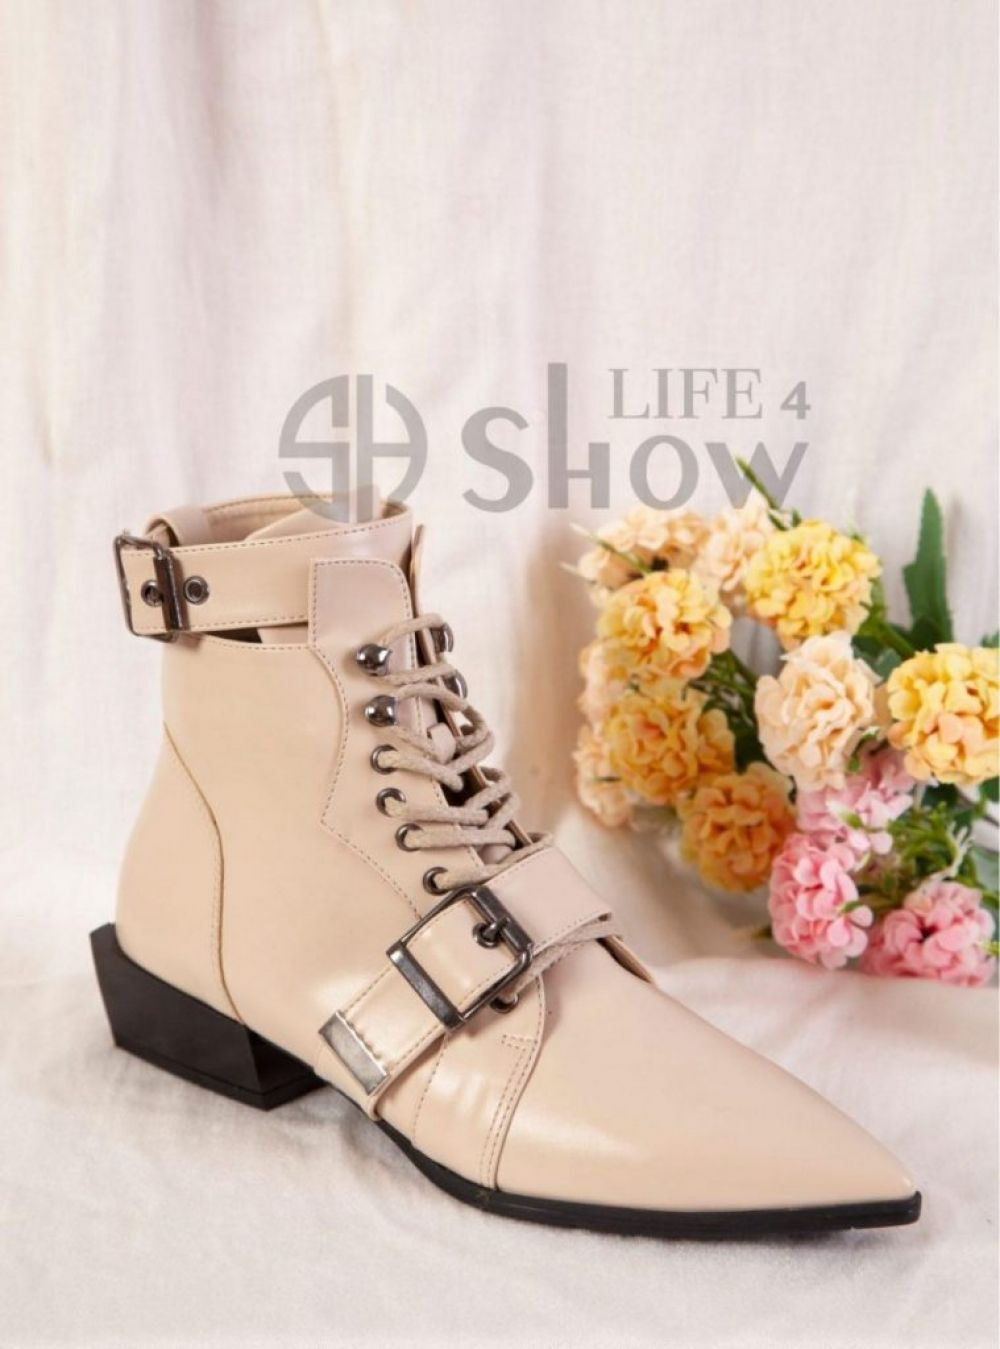 Stylish Buckle Ankle Boots for Women Lace Up ShowLife4 NEW 2021 ✨ We are exporting this products. Distributors Wanted Worldwide ✨ Product of Turkey for export worldwide Click picture to view details of this product Follow Us and share this on your page #YeniExpo #madeinturkey 🇹🇷🇹🇷🇹🇷 #SupportTurkey